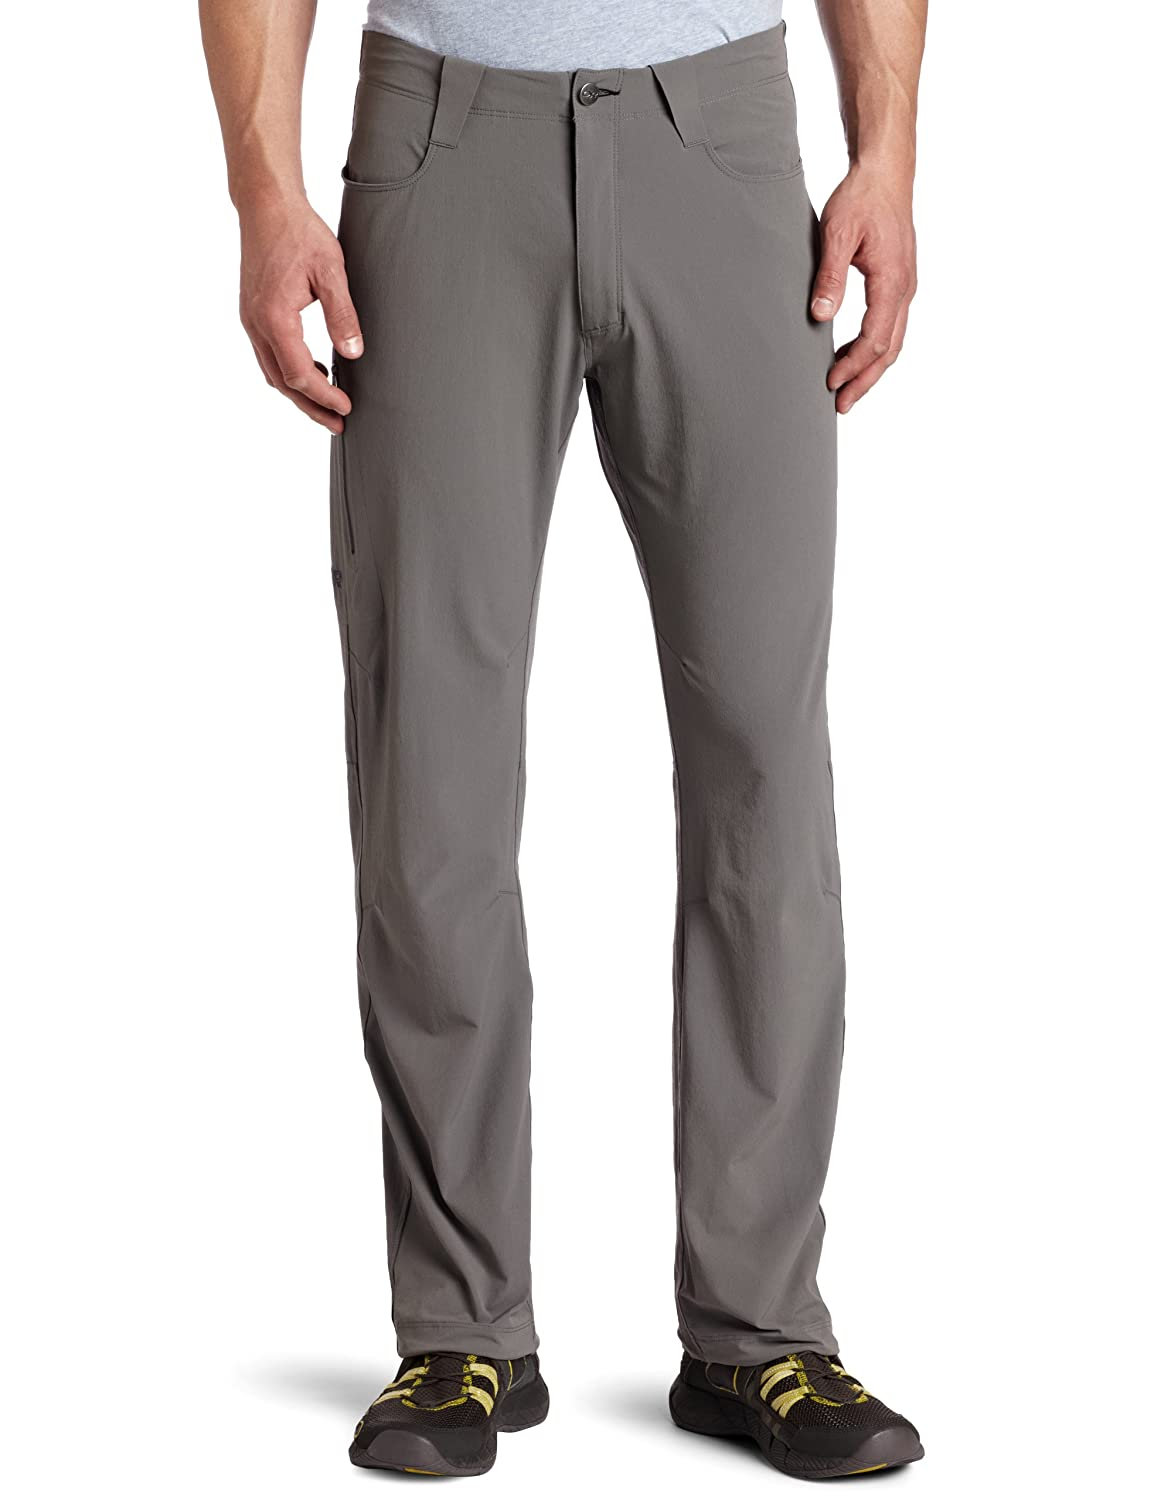 Outdoor Research Men's Ferrosi Pants 55525008-P